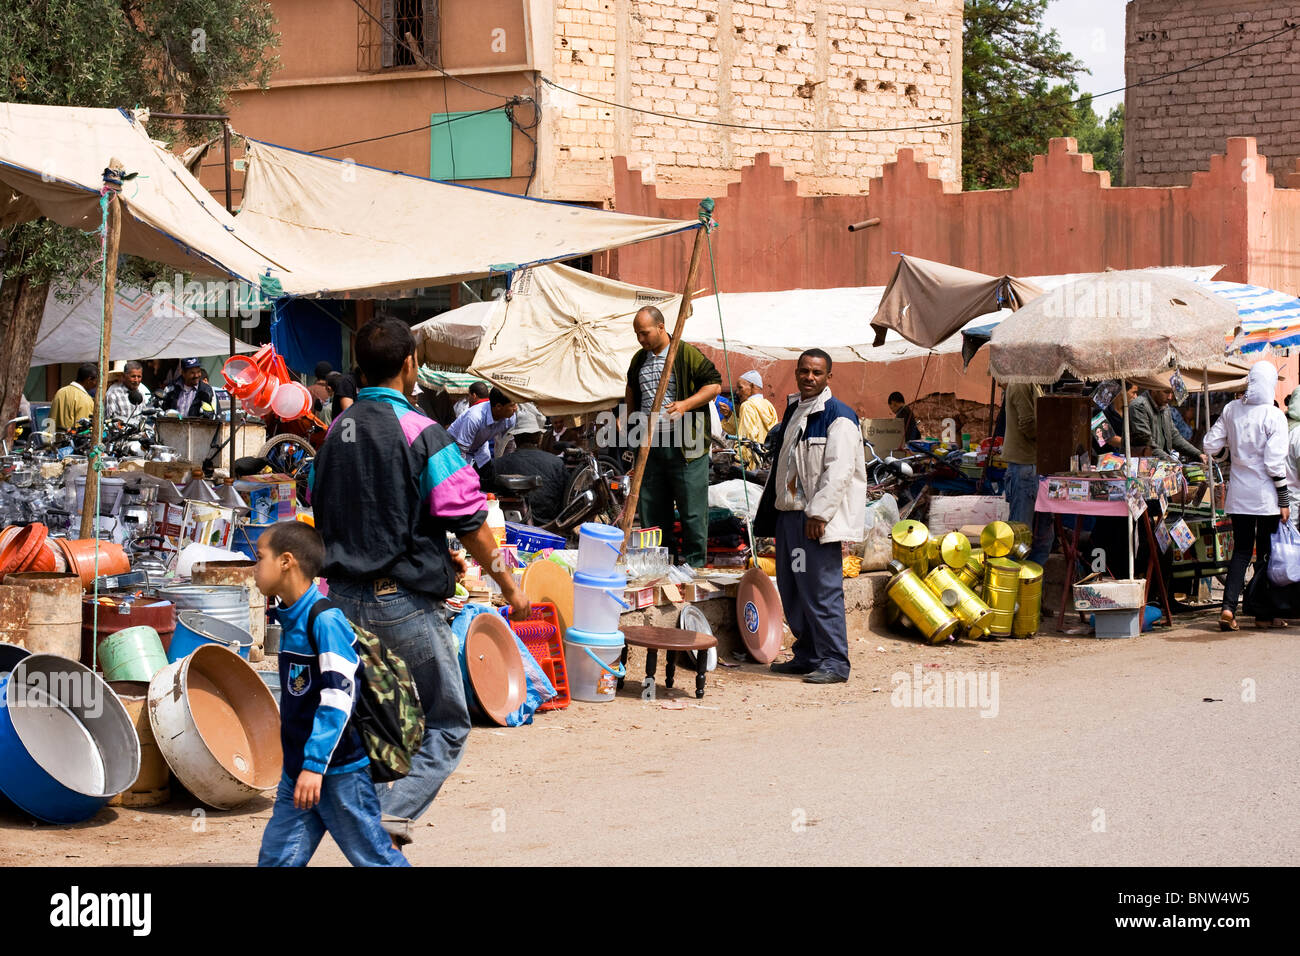 Villagers at the Friday market in the Ourika Valley in the Atlas Mountains near Marrakech in Morocco - Stock Image